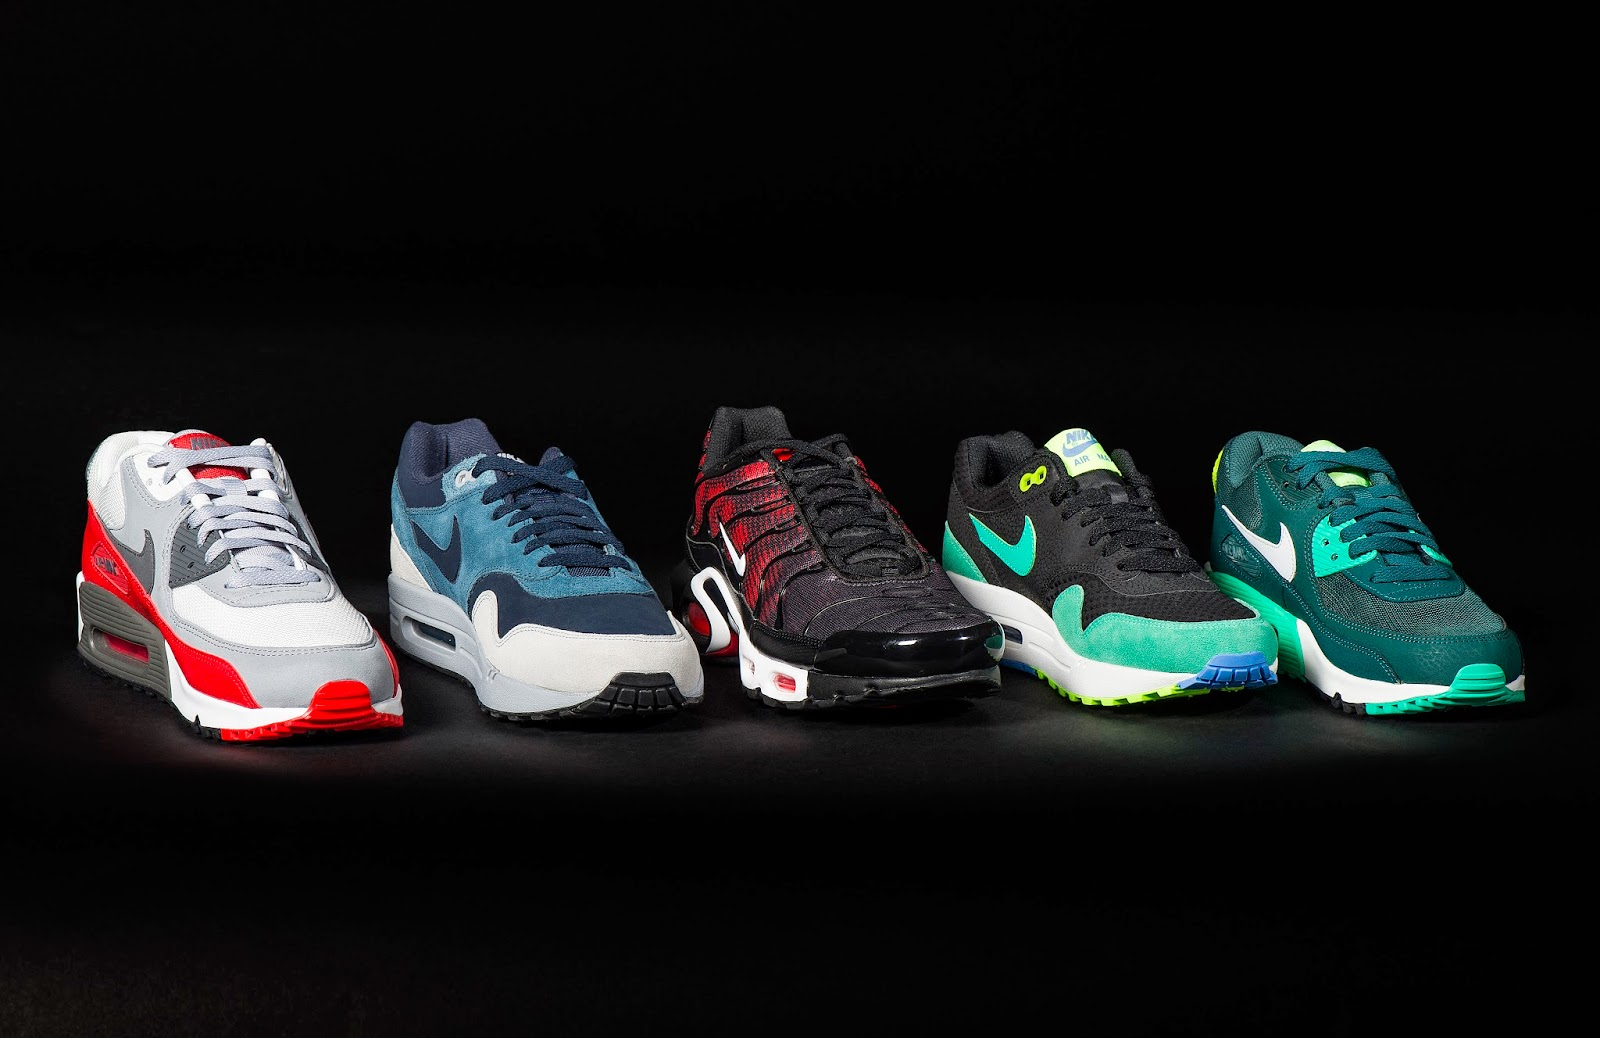 FOOT LOCKER FEIERT EXCLUSIVE SNEAKERS WITH BIG PERSONALITIES - IT'S AIR MAX DAY